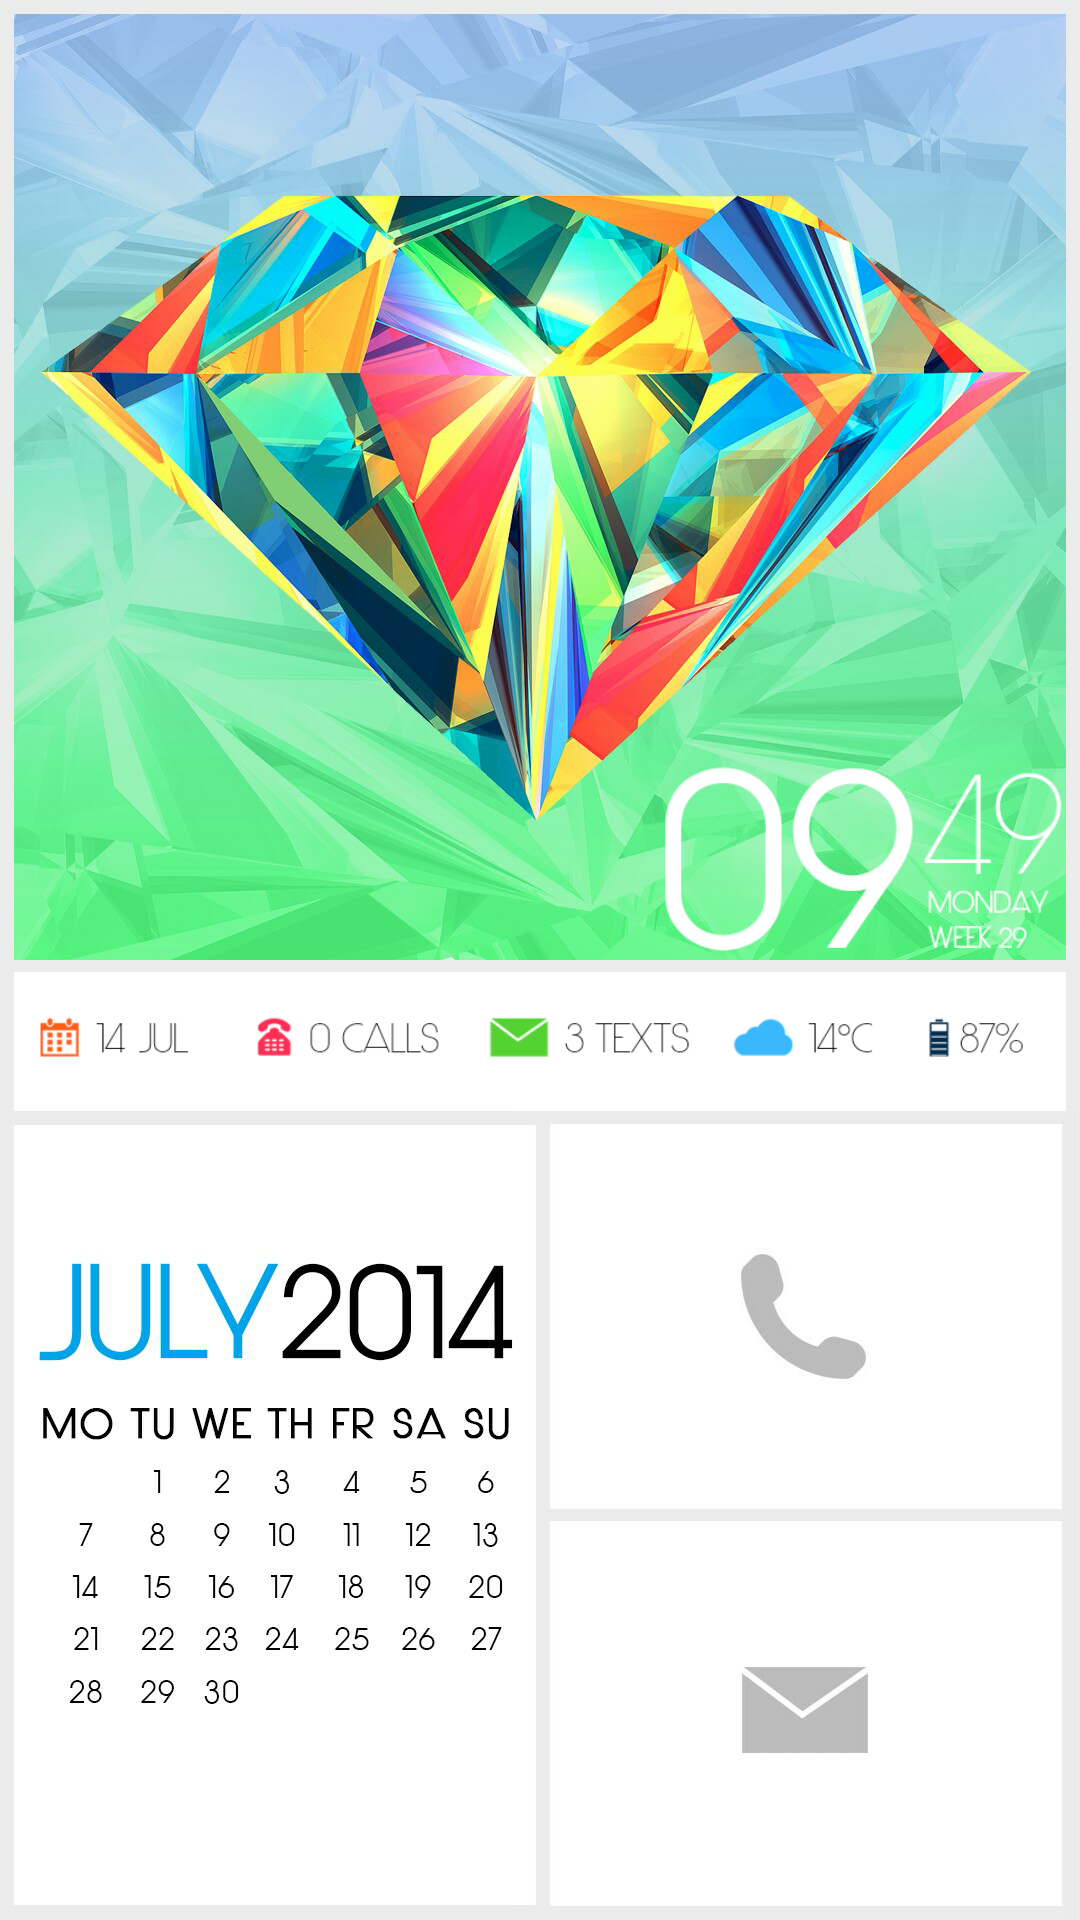 Screenshot_2014-07-14-09-49-42